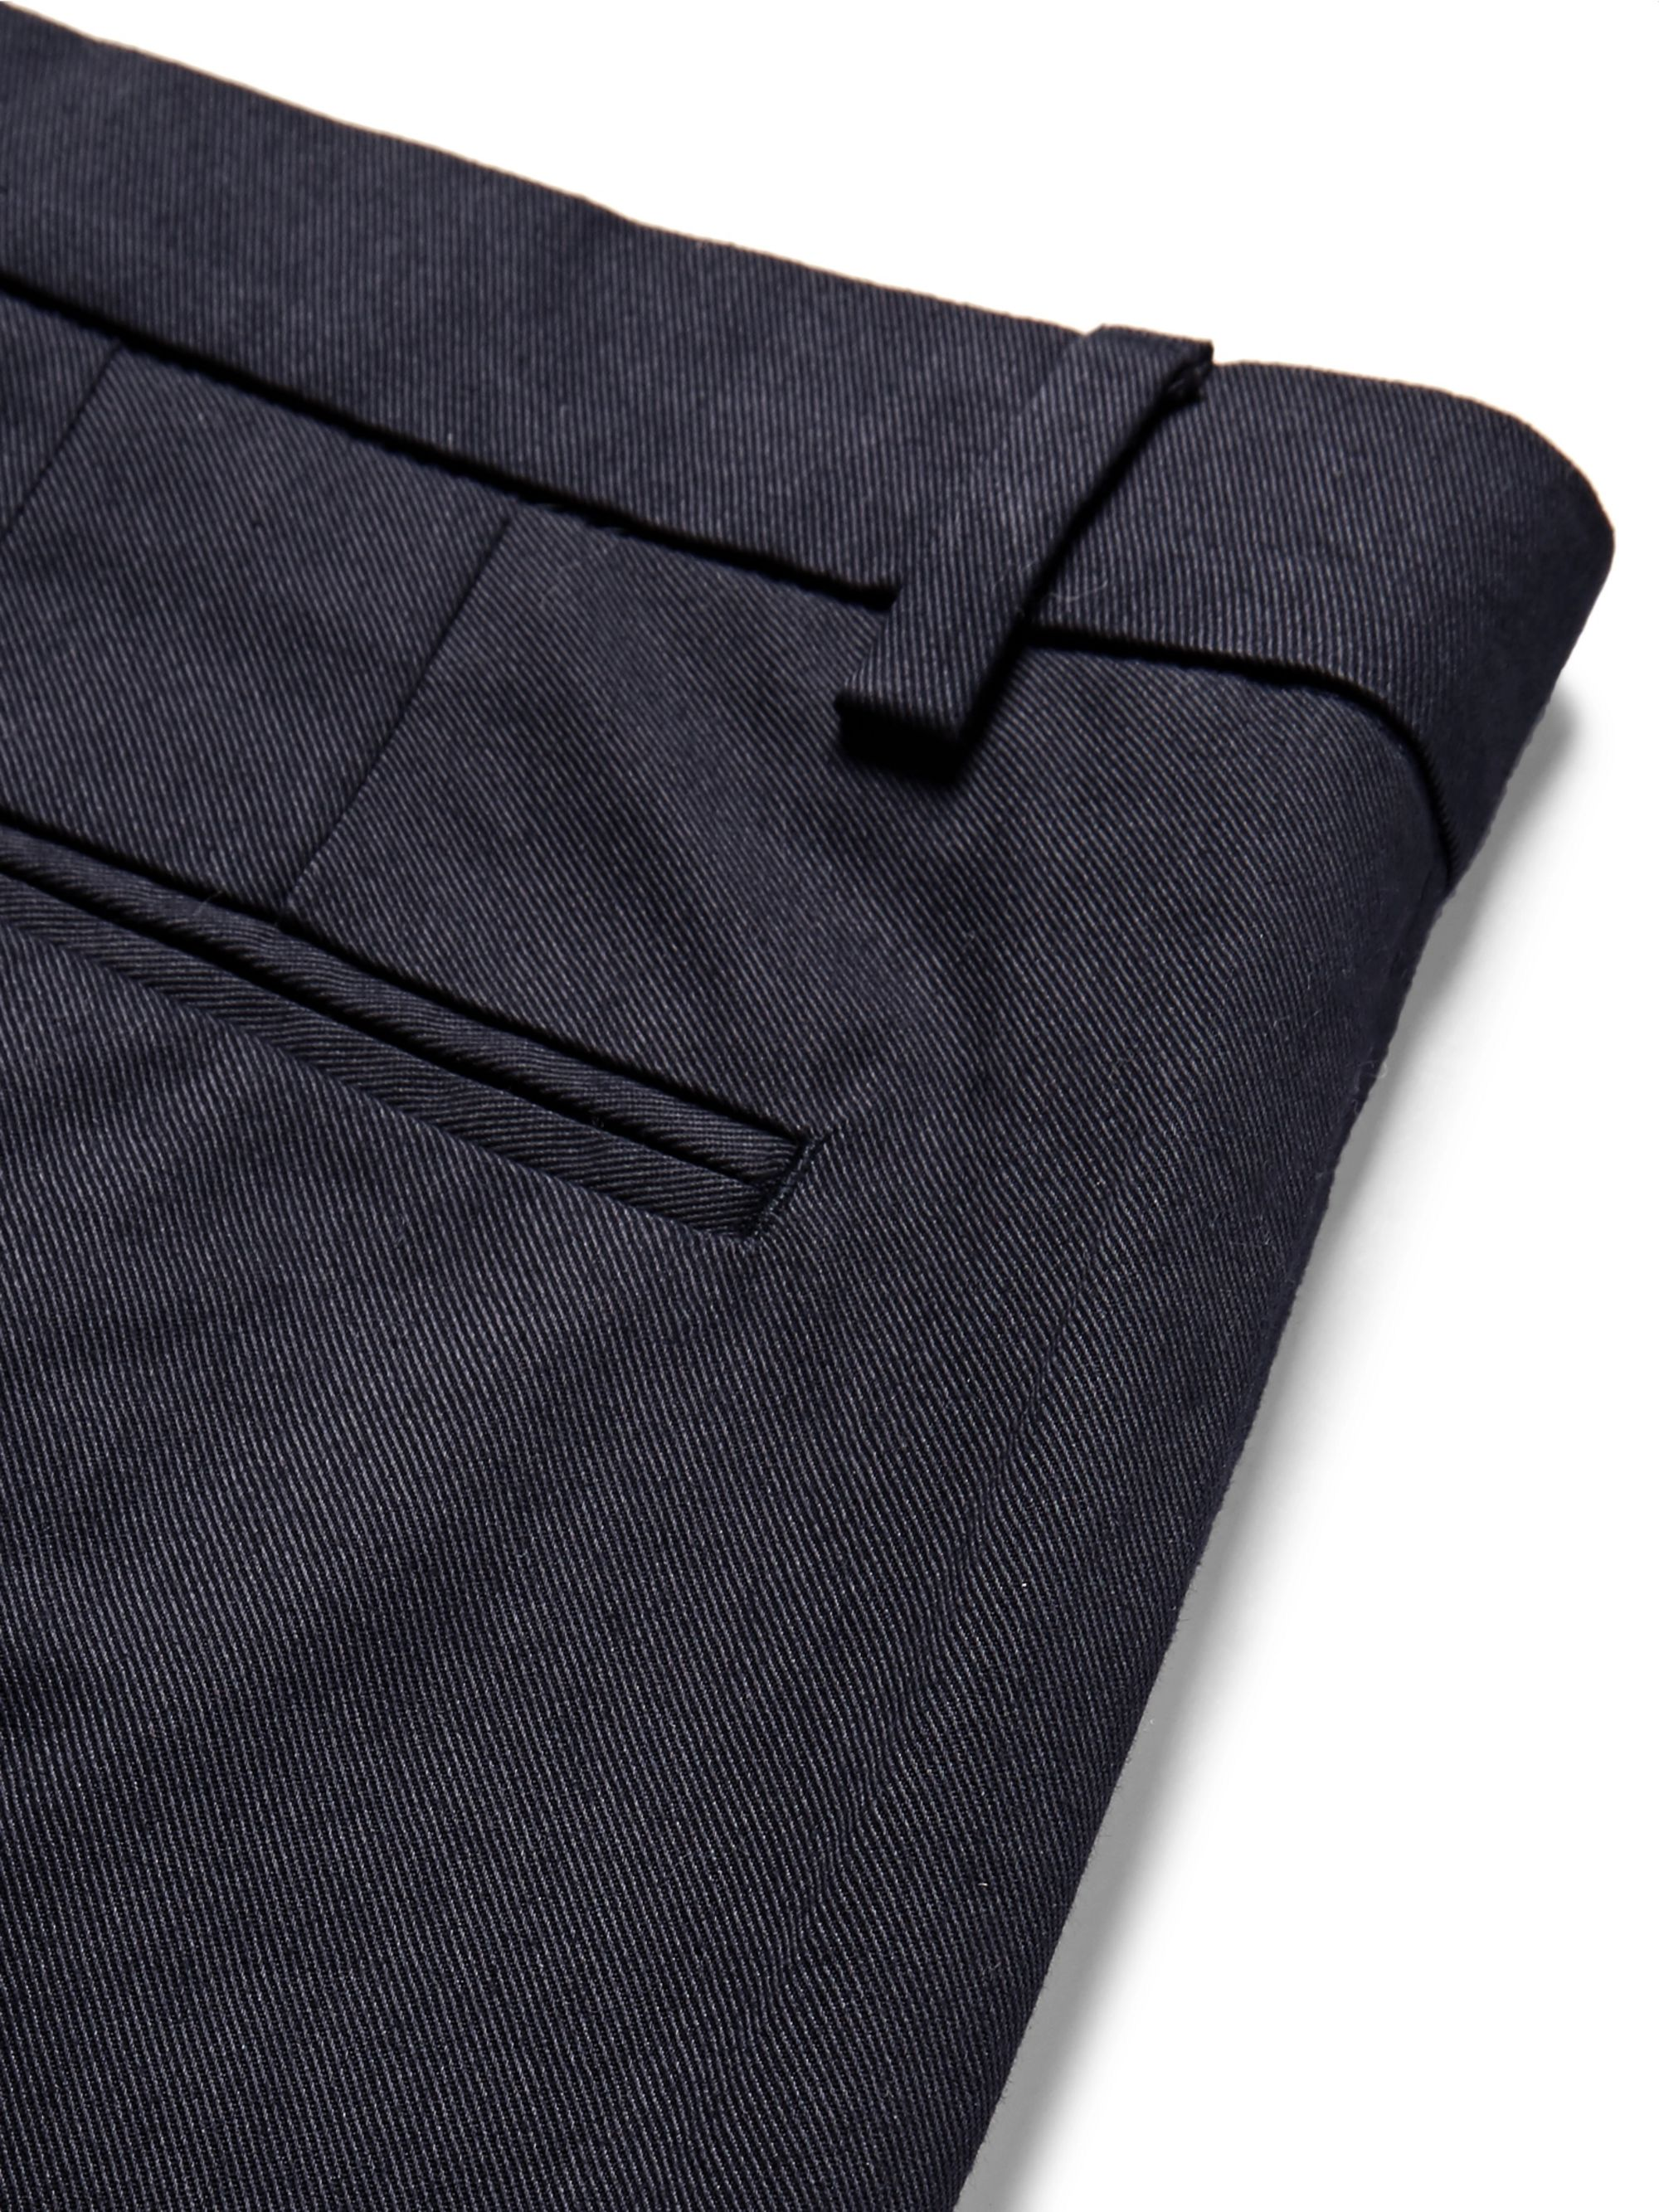 SALLE PRIVÉE Aubin Pleated Cotton-Twill Trousers